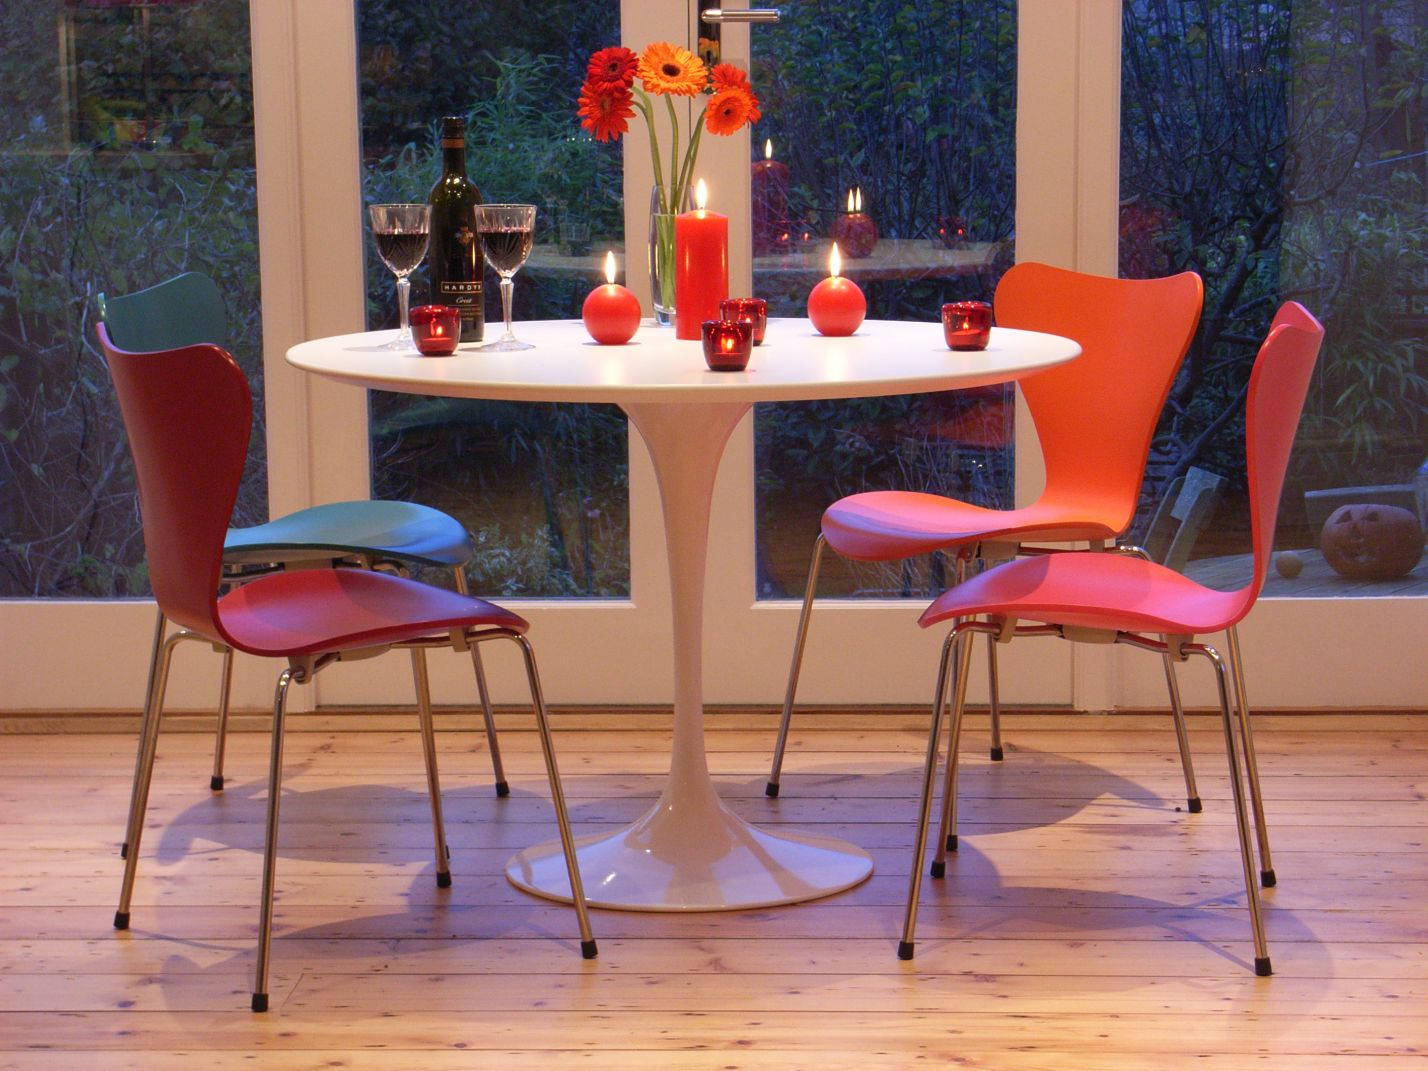 formal dining rooms may be losing popularity and we show how they compare with kitchen diners - here is a smart cameo, creating a dining area at the end of the kitchen